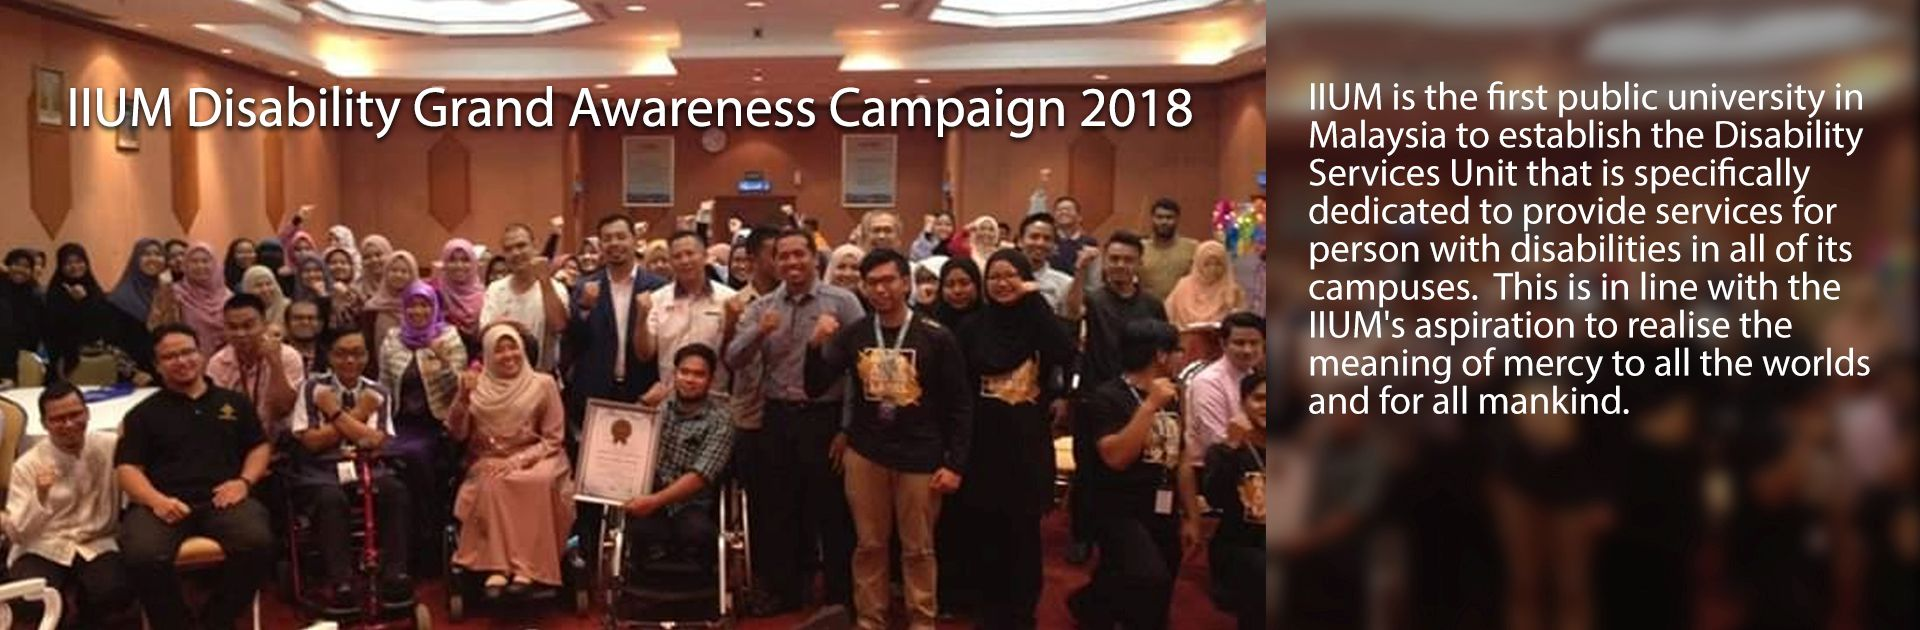 Disability Awareness Campaign 2018